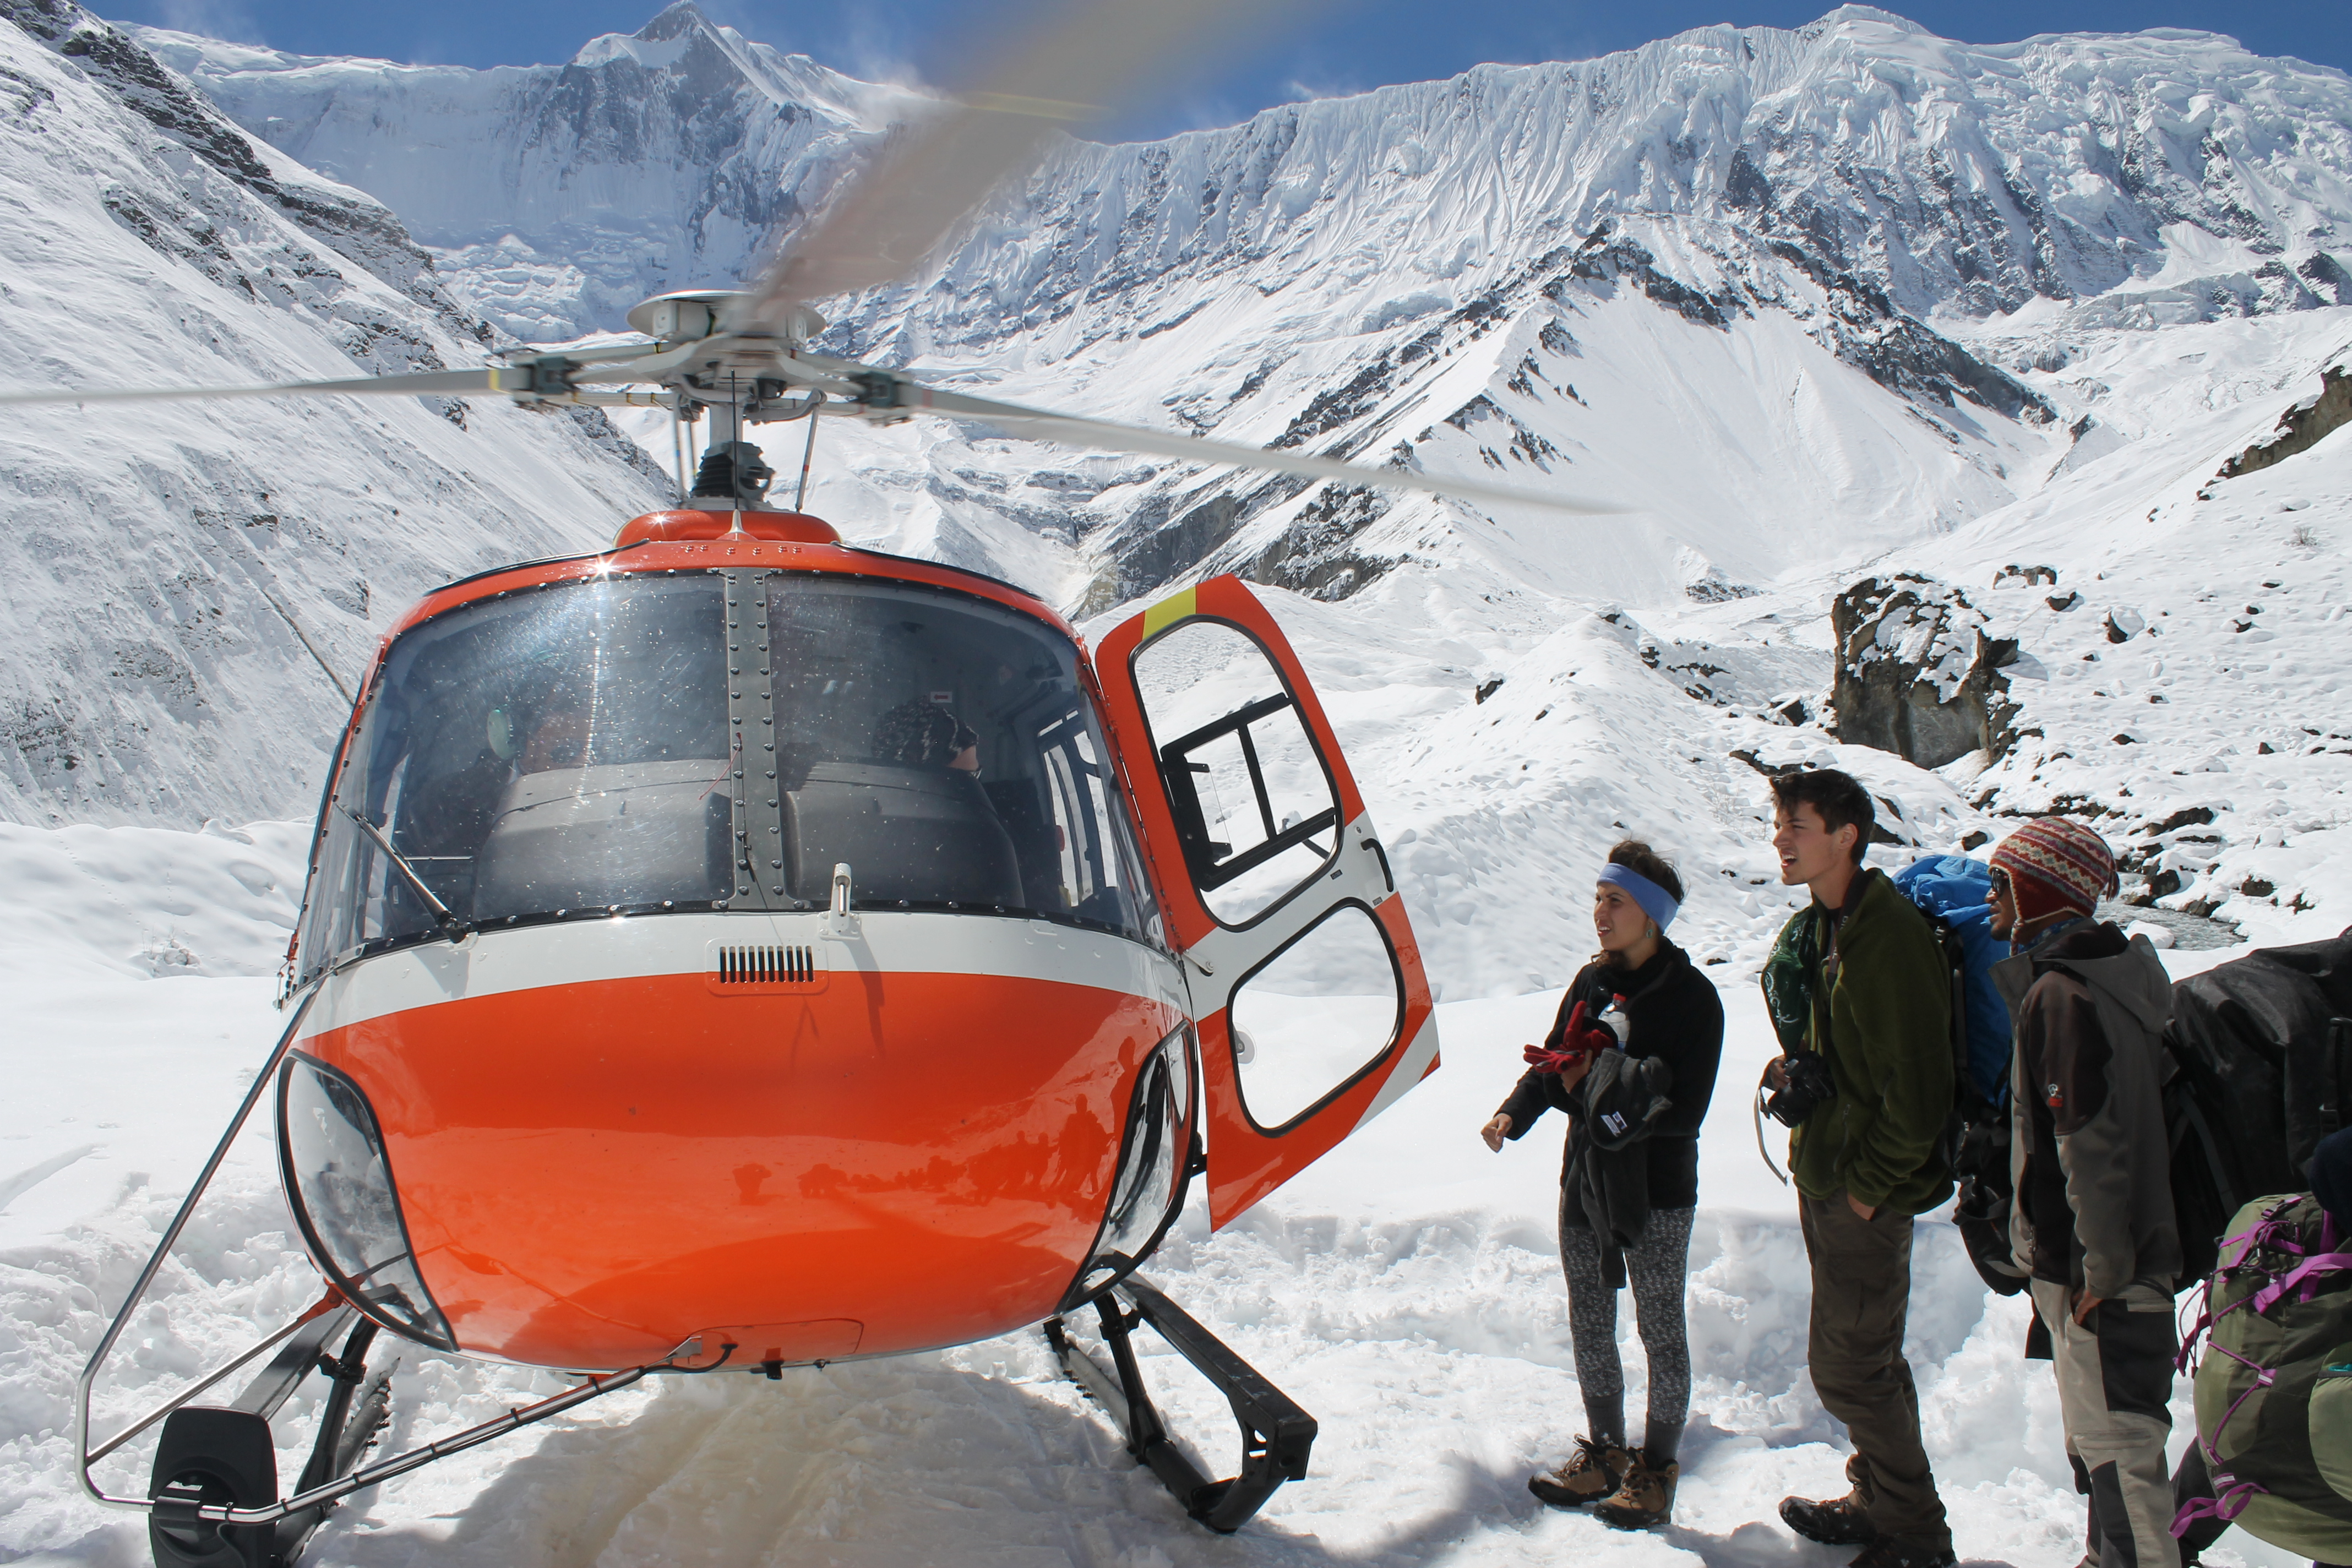 A helicopter rescues stranded trekkers along the Annapurna Circuit trail in Nepal on October 16, 2014.